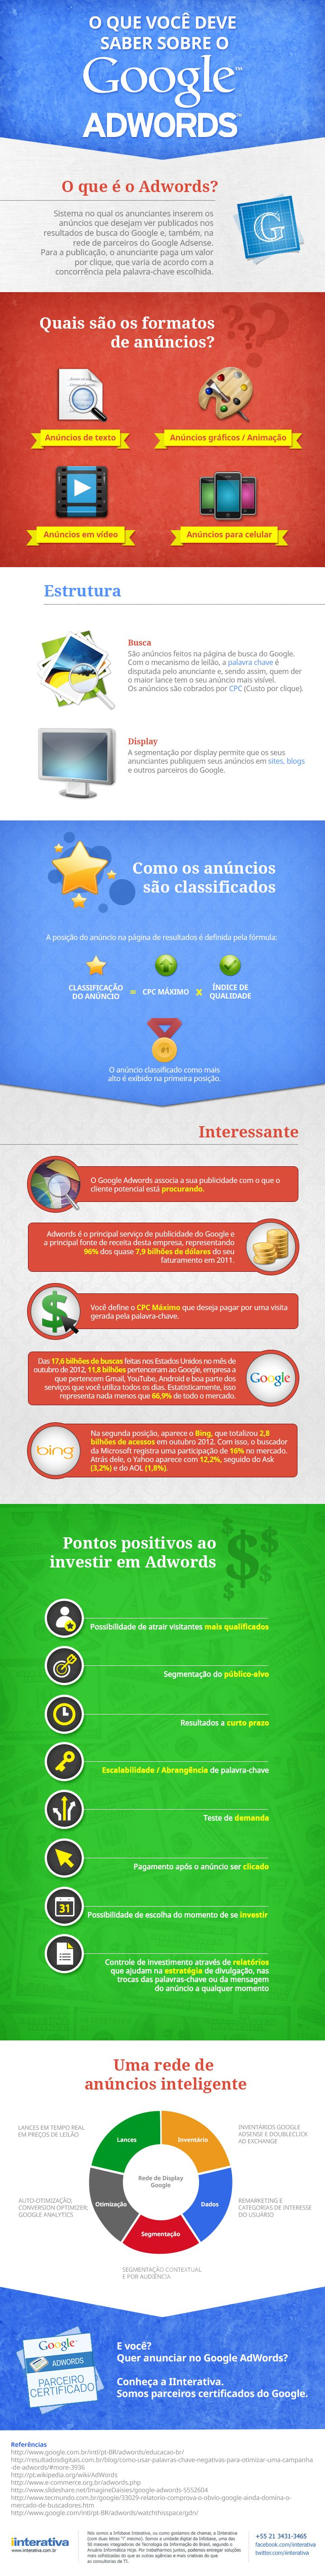 Descubra como funciona o Google Adwords. #SocialMedia #Adwords #infographic